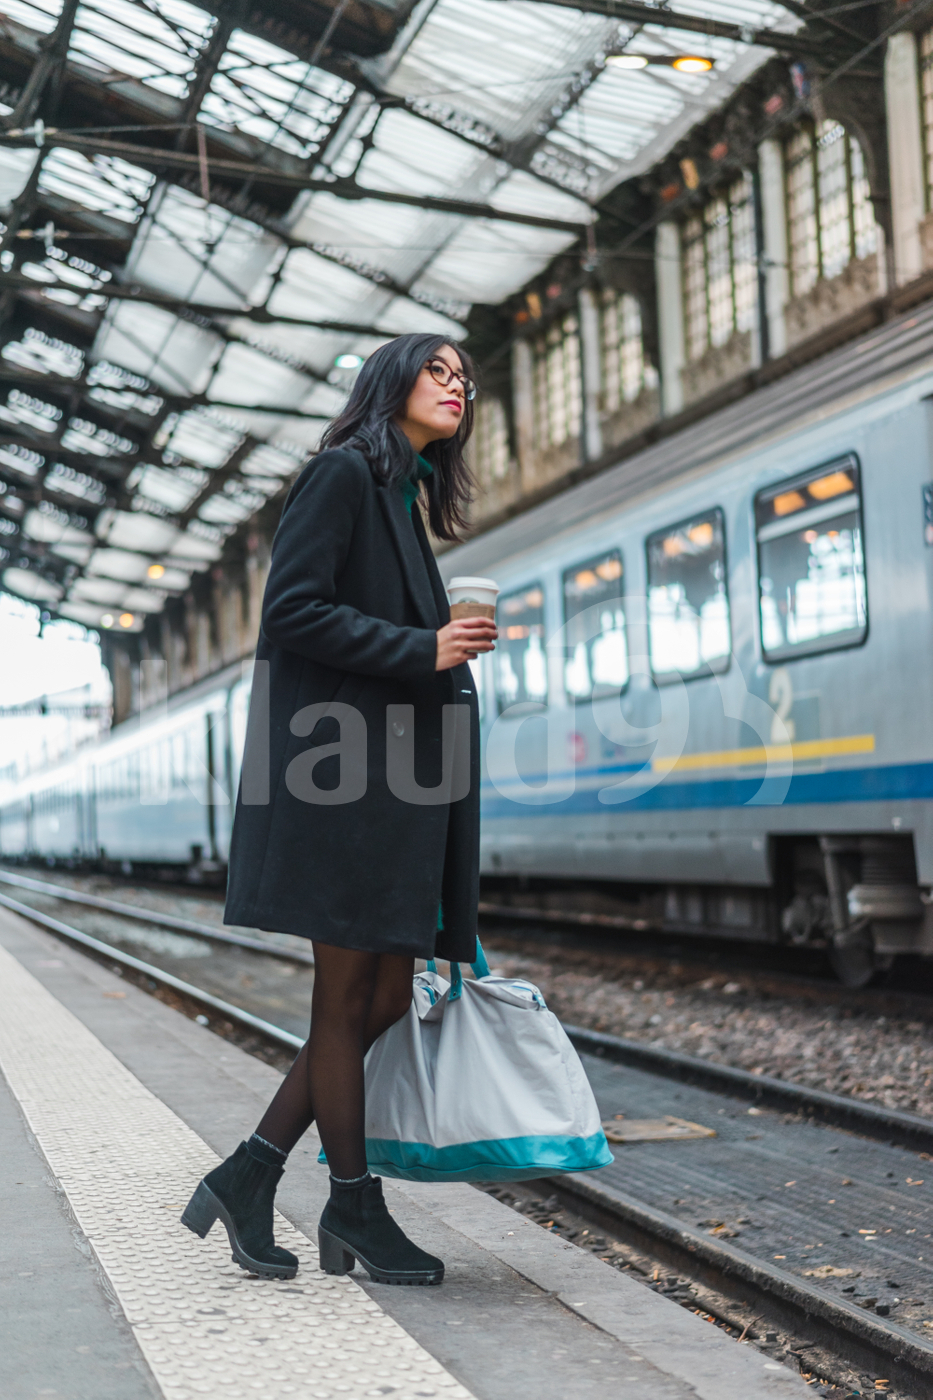 Asian woman waiting for a train